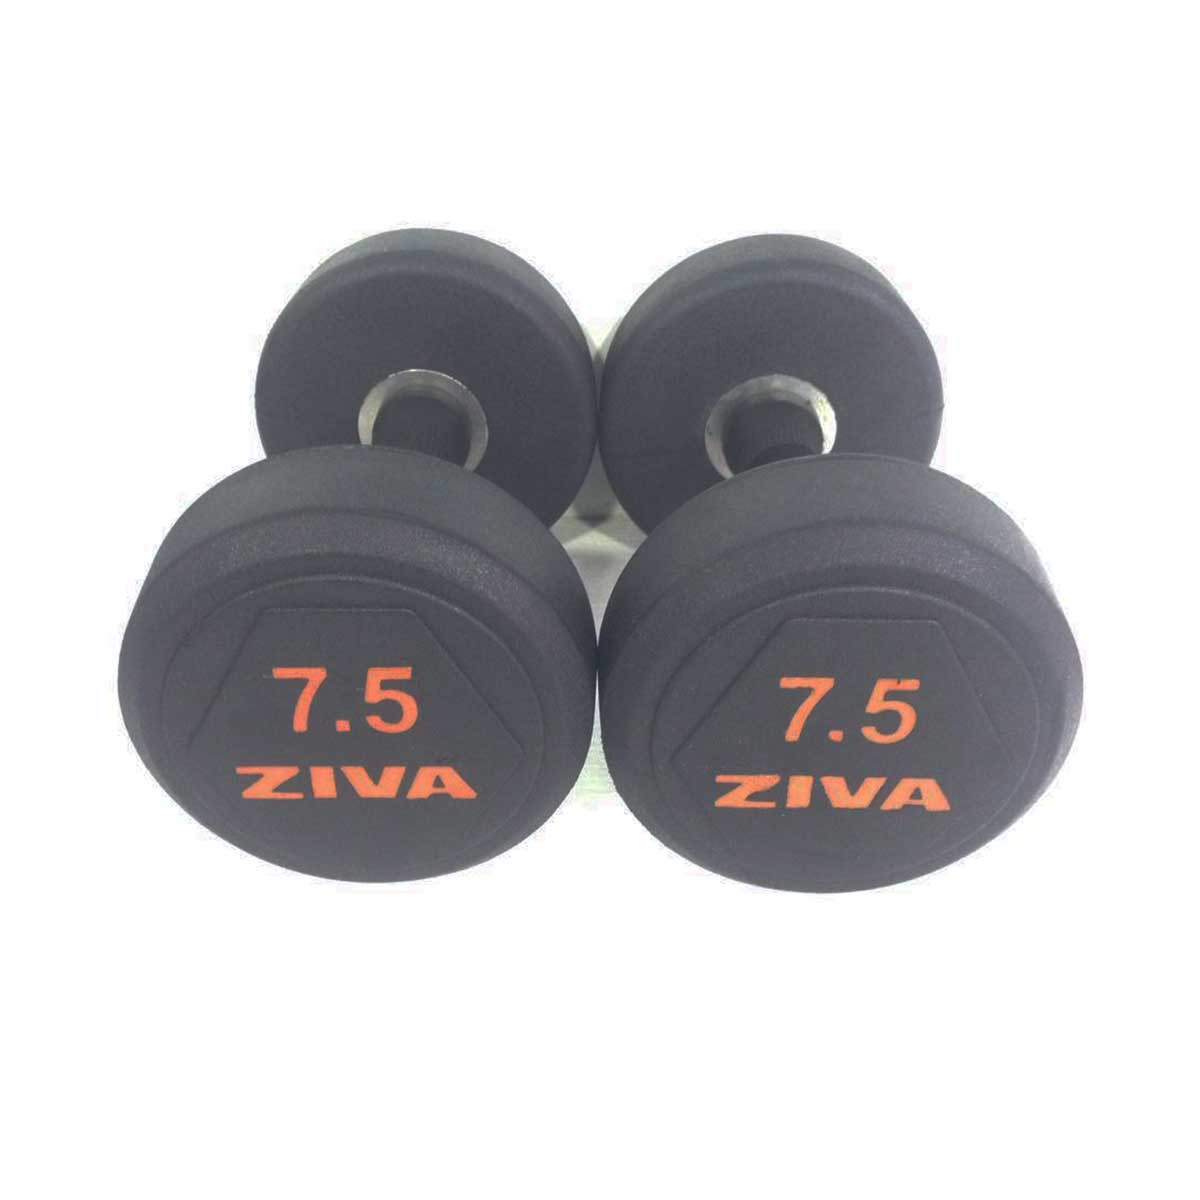 Buy Ziva Sl Solid Steel Rubber Dumbbell Set Online Indiafitness Products